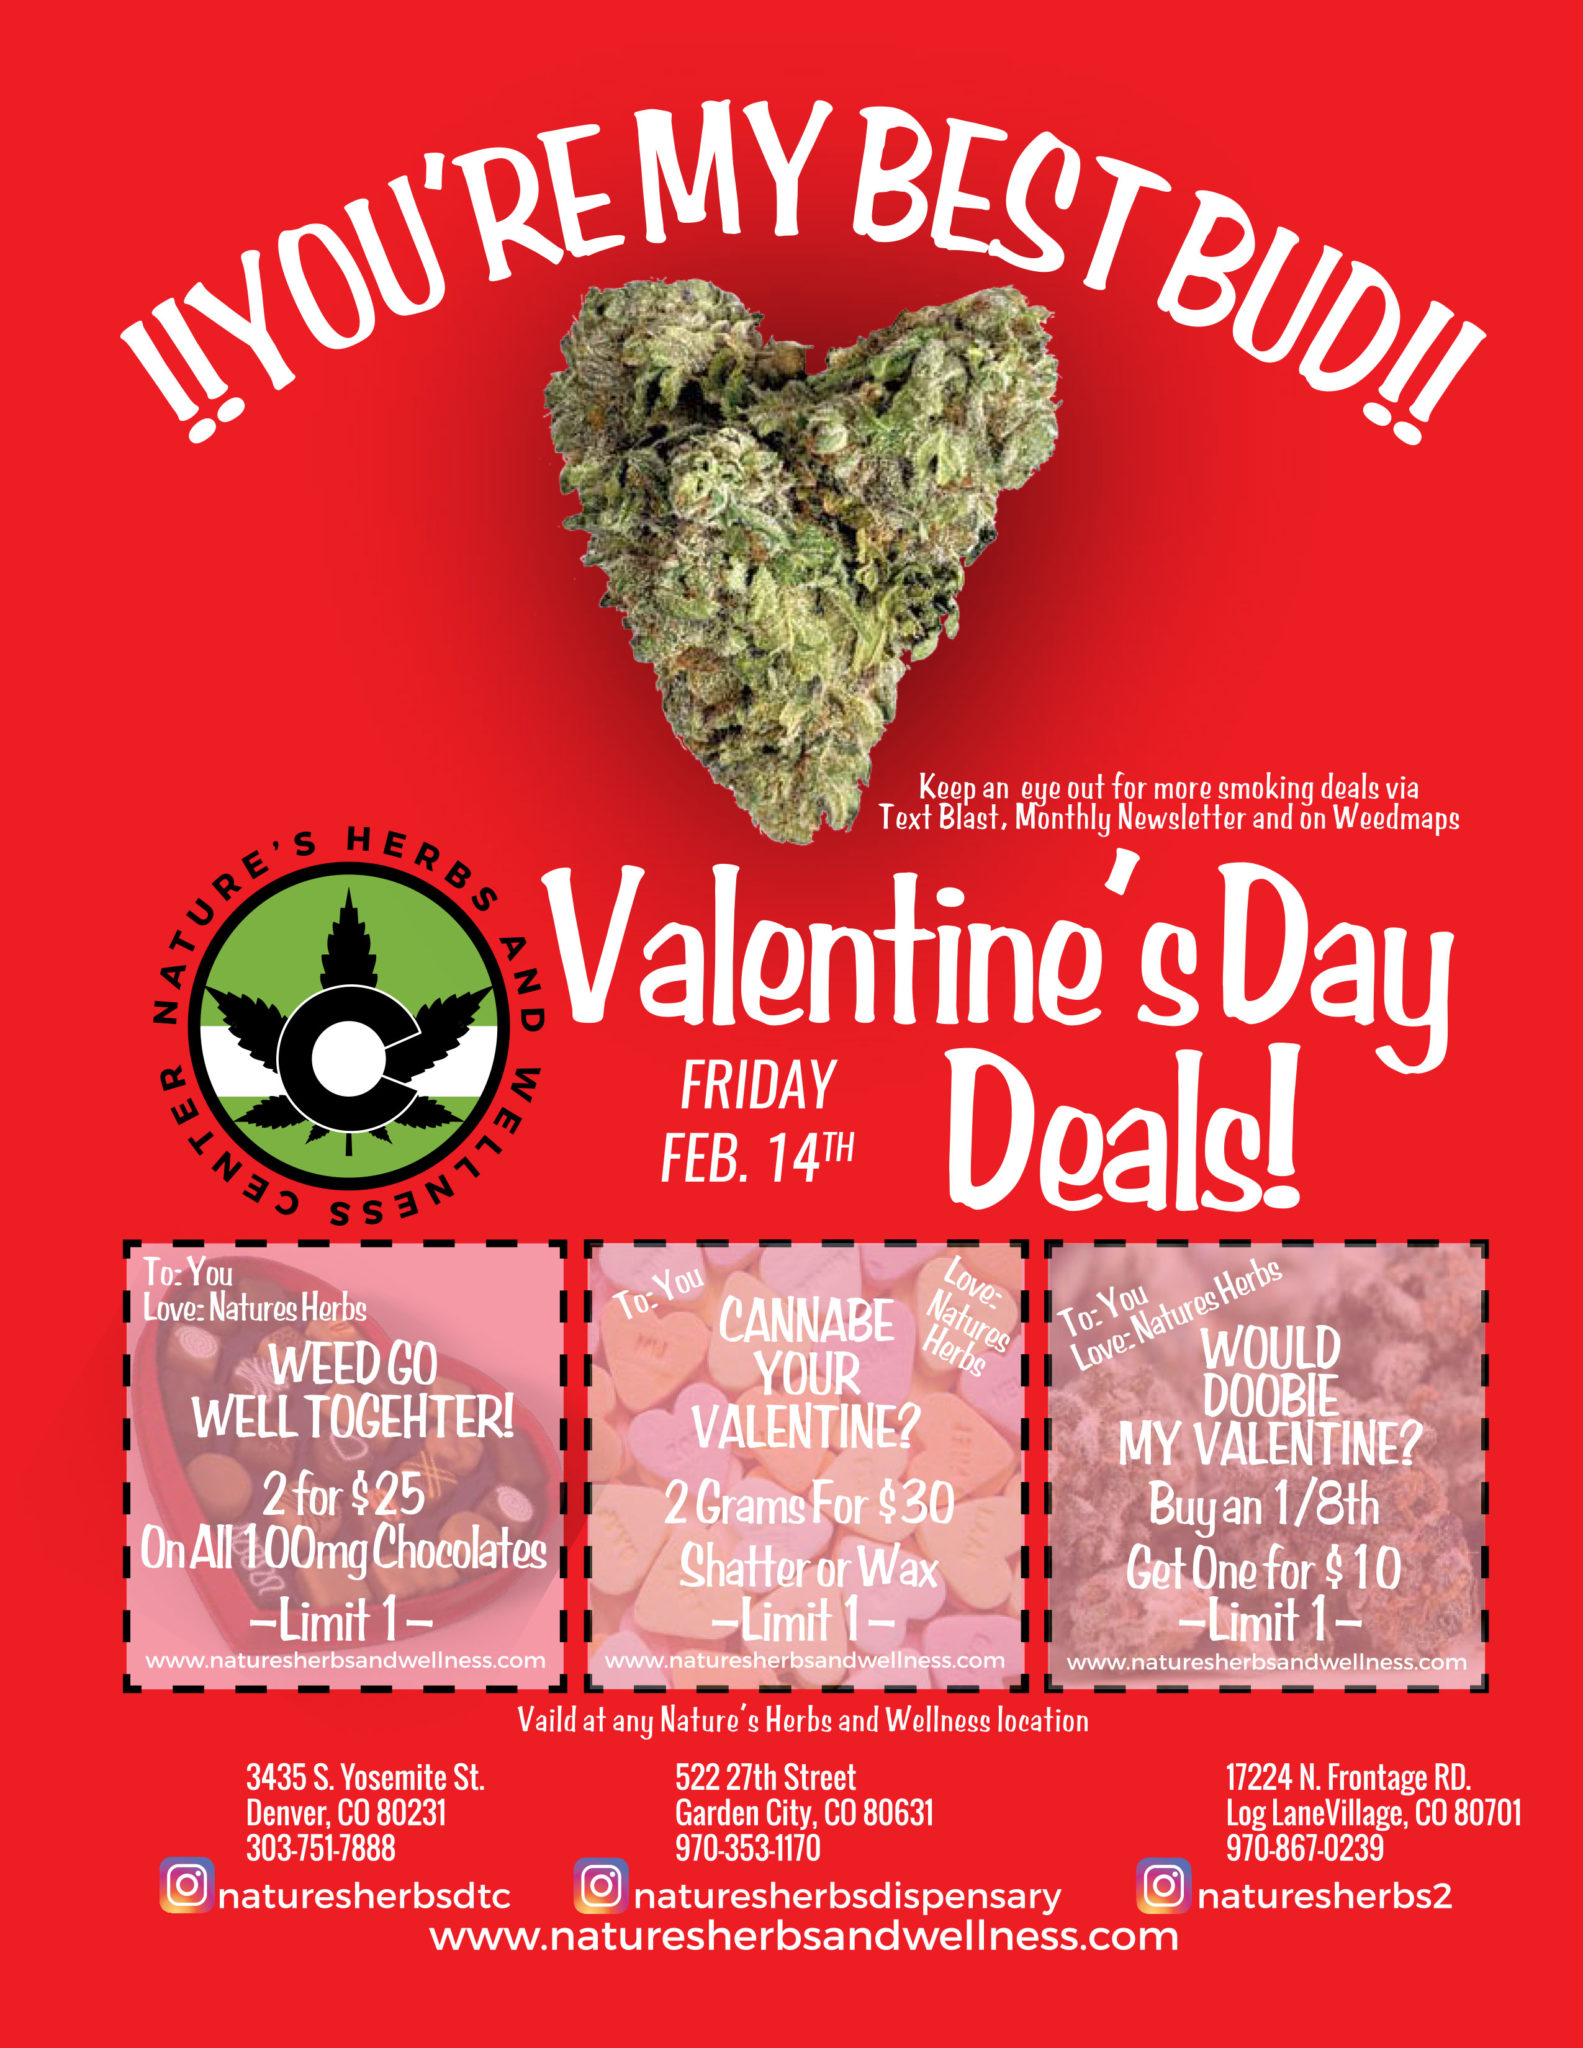 Nature's Herbs Valentine's Day Deals